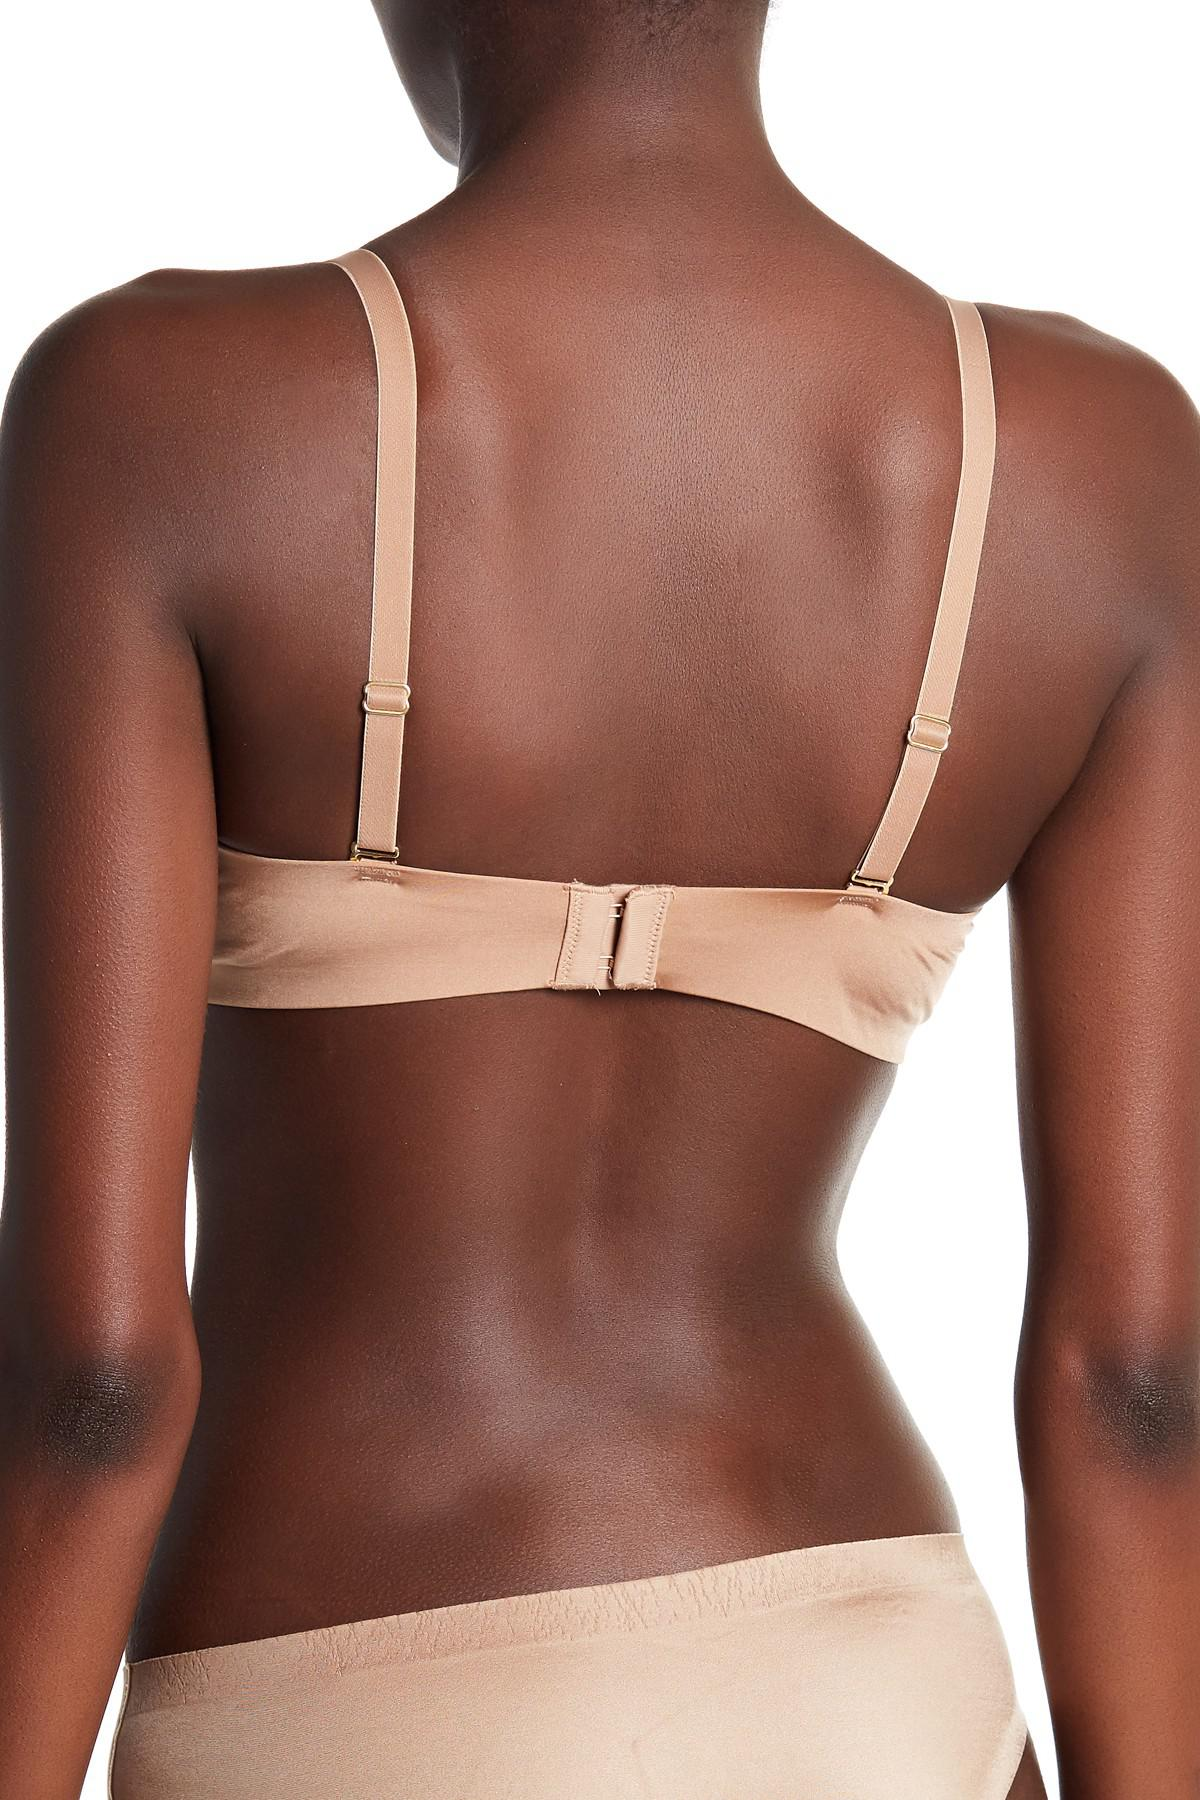 4133694b77c95 Lyst - Wacoal Intuition Wireless Push-up Bra (a-d Cups) in Brown